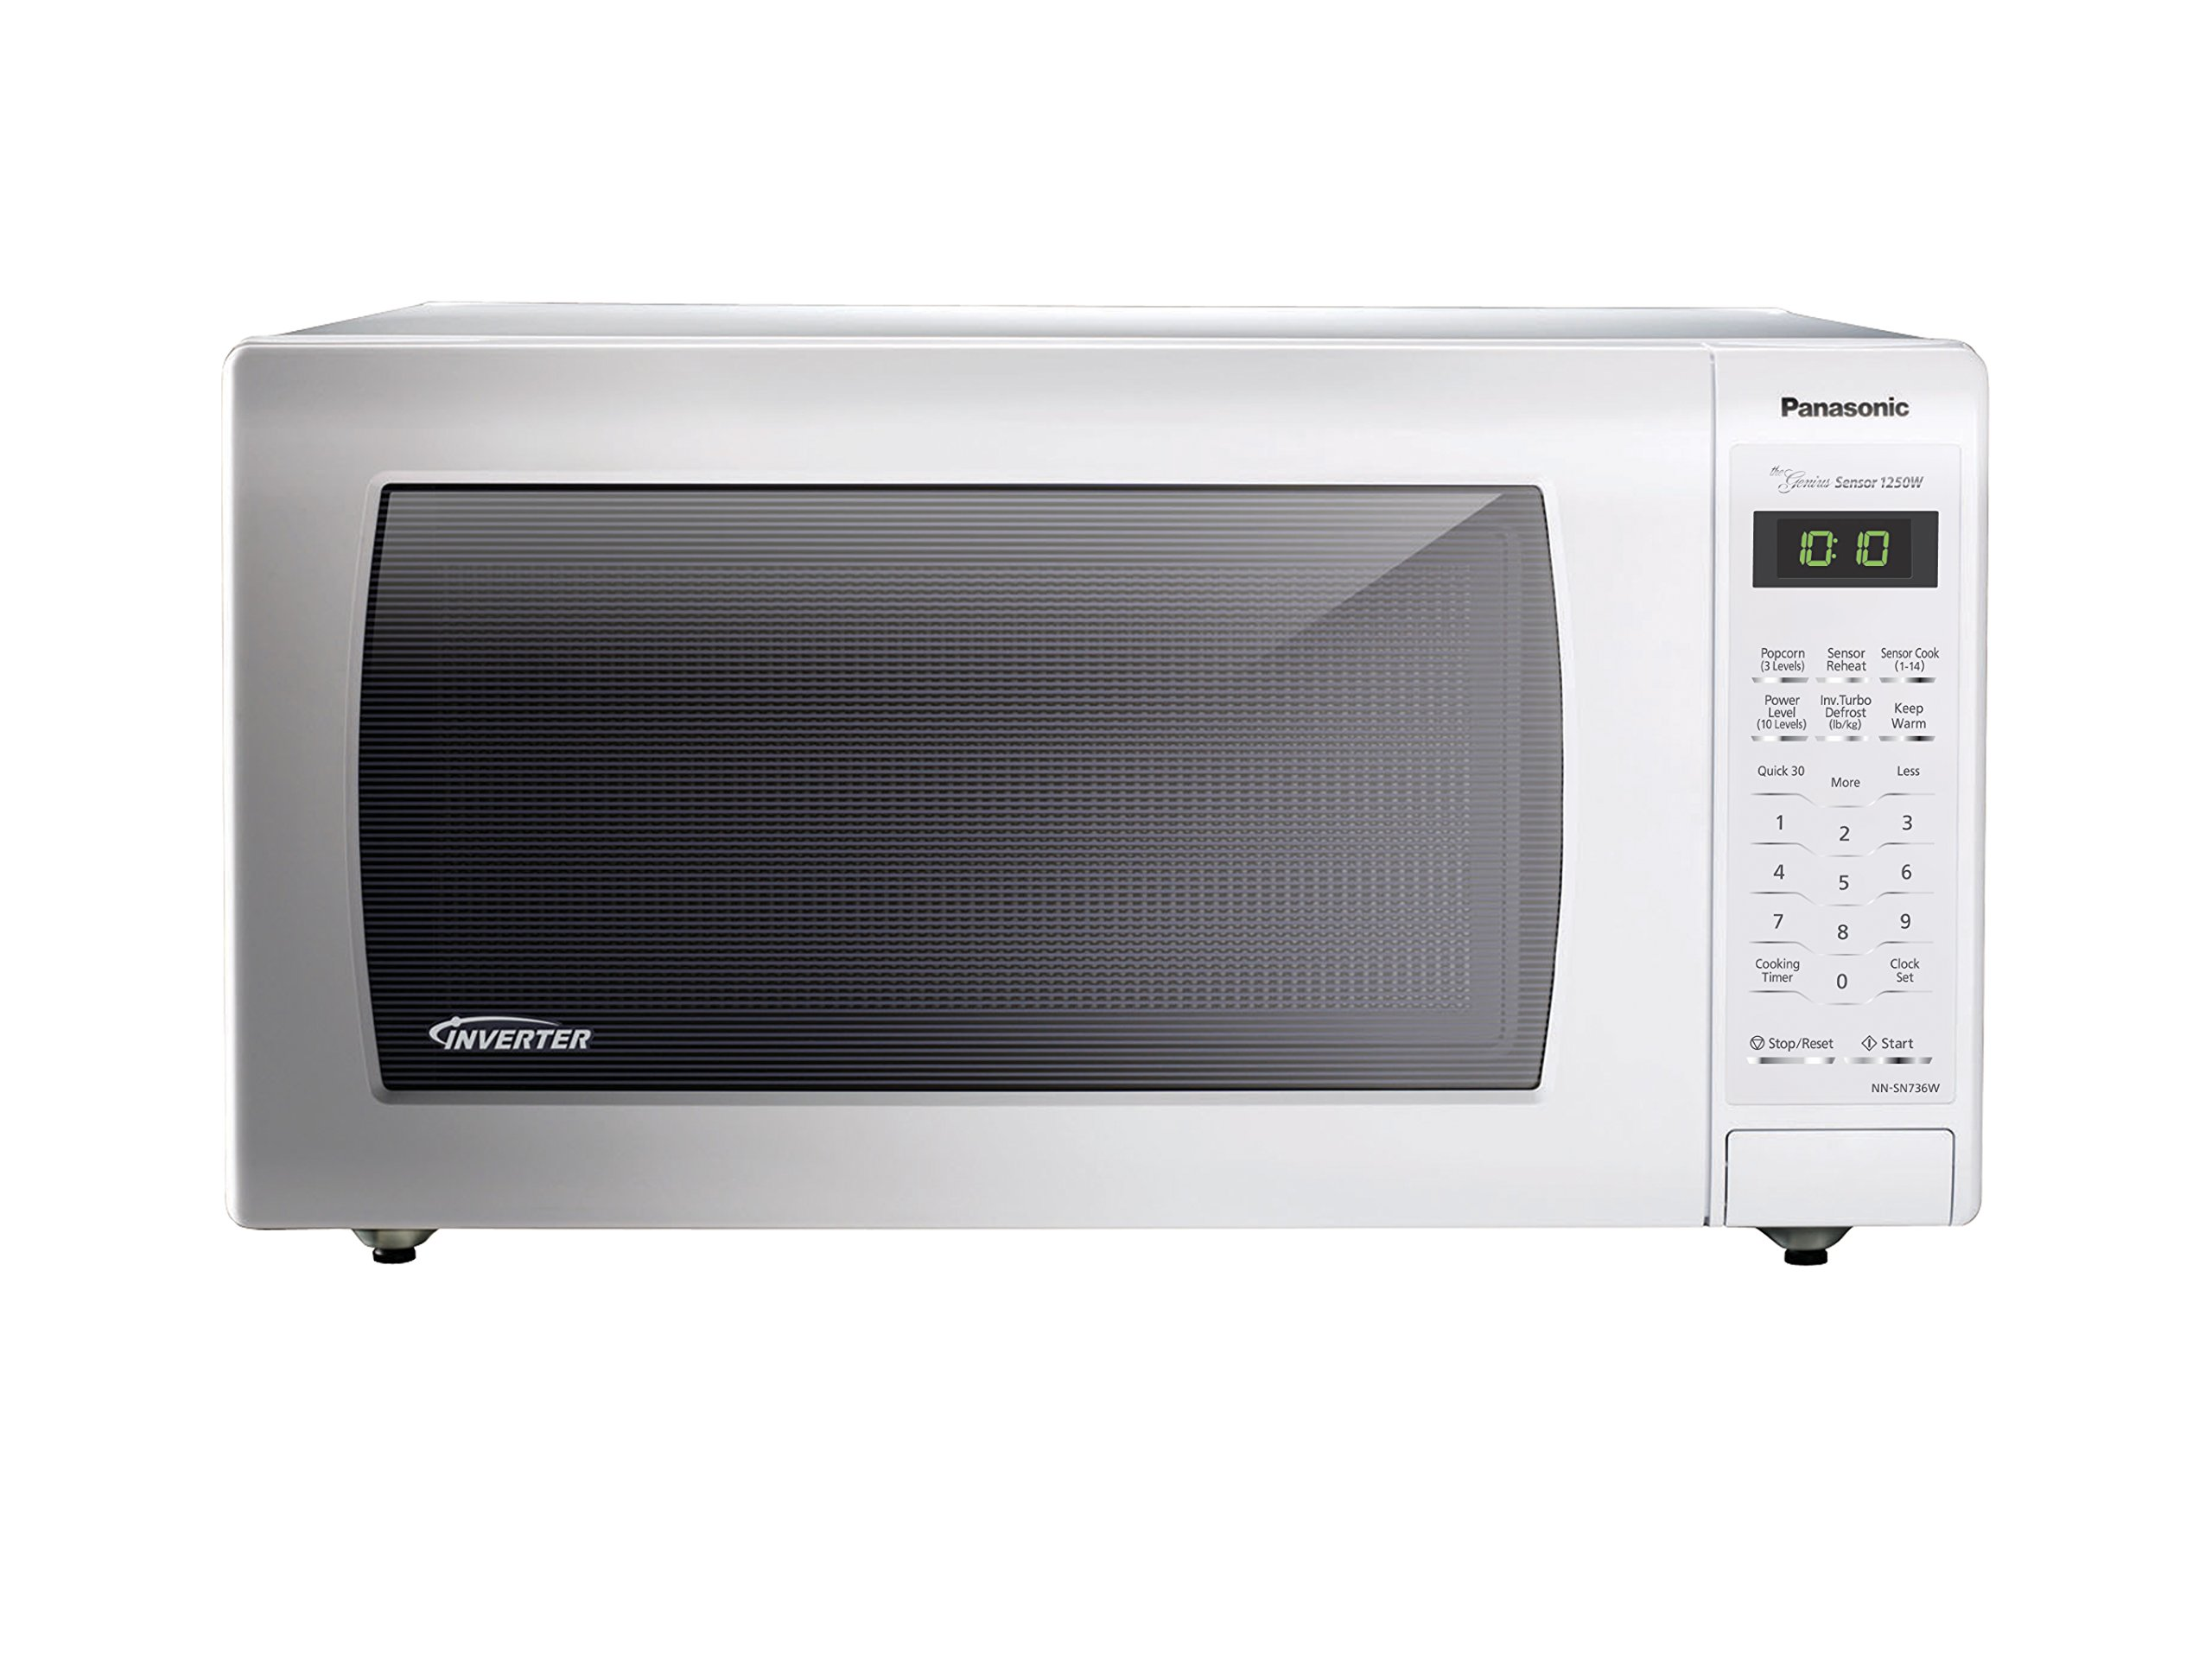 Best Countertop Microwave Oven ~ Best rated in countertop microwave ovens helpful